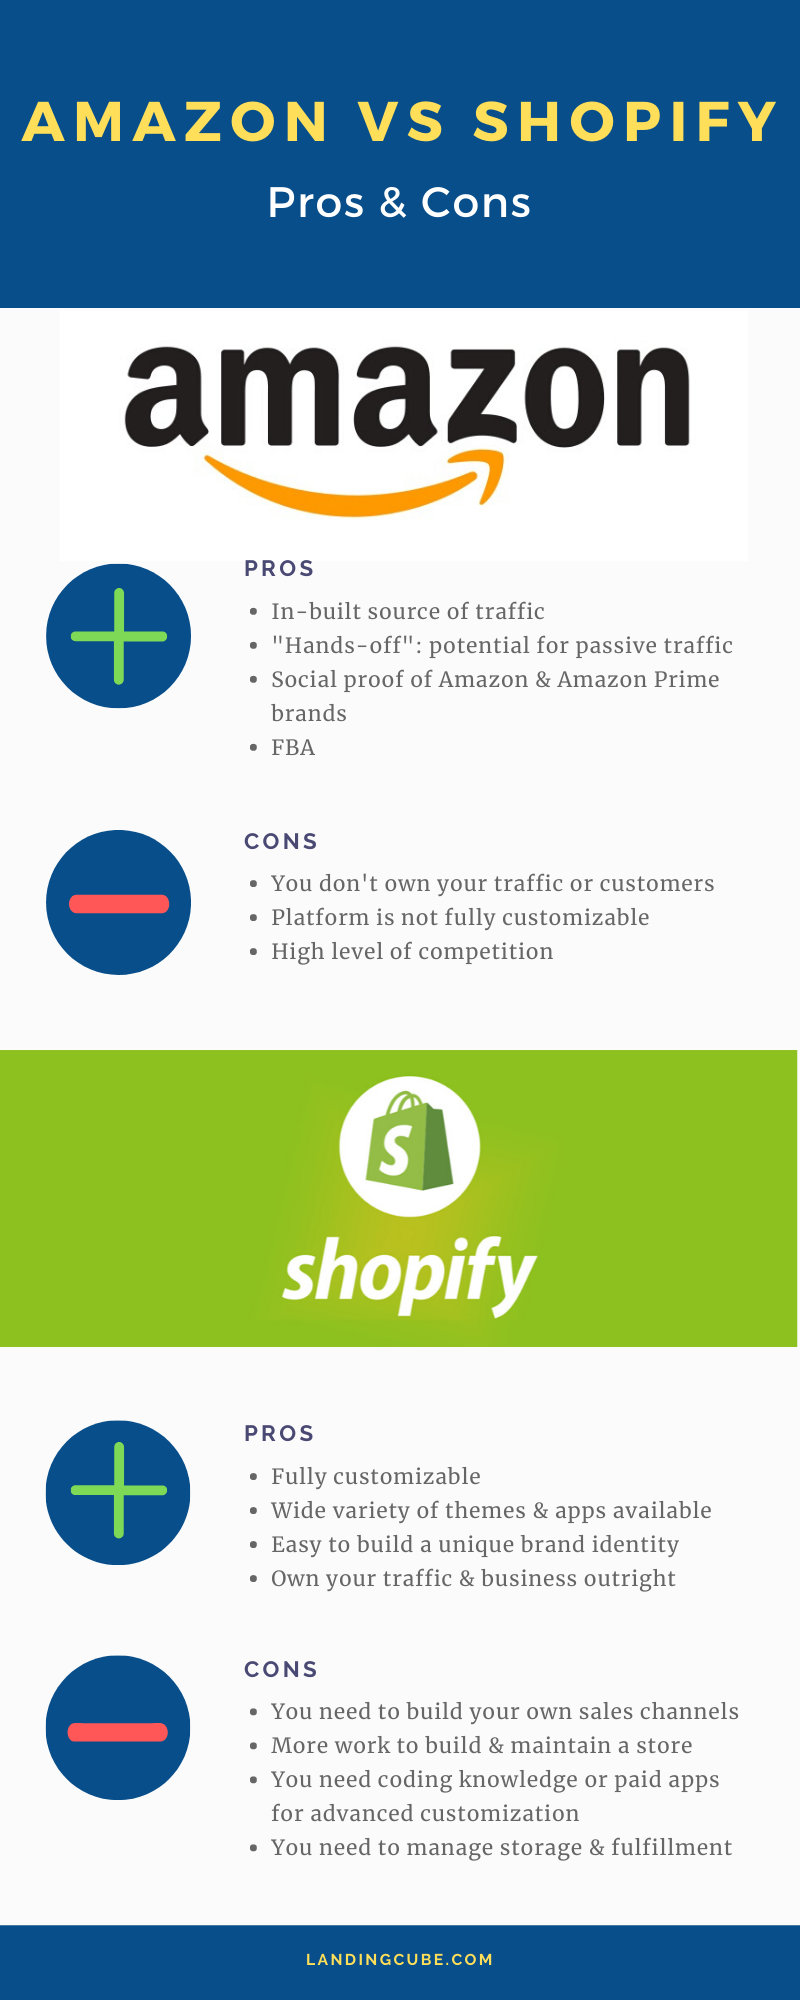 Amazon vs Shopify pros & cons infographic